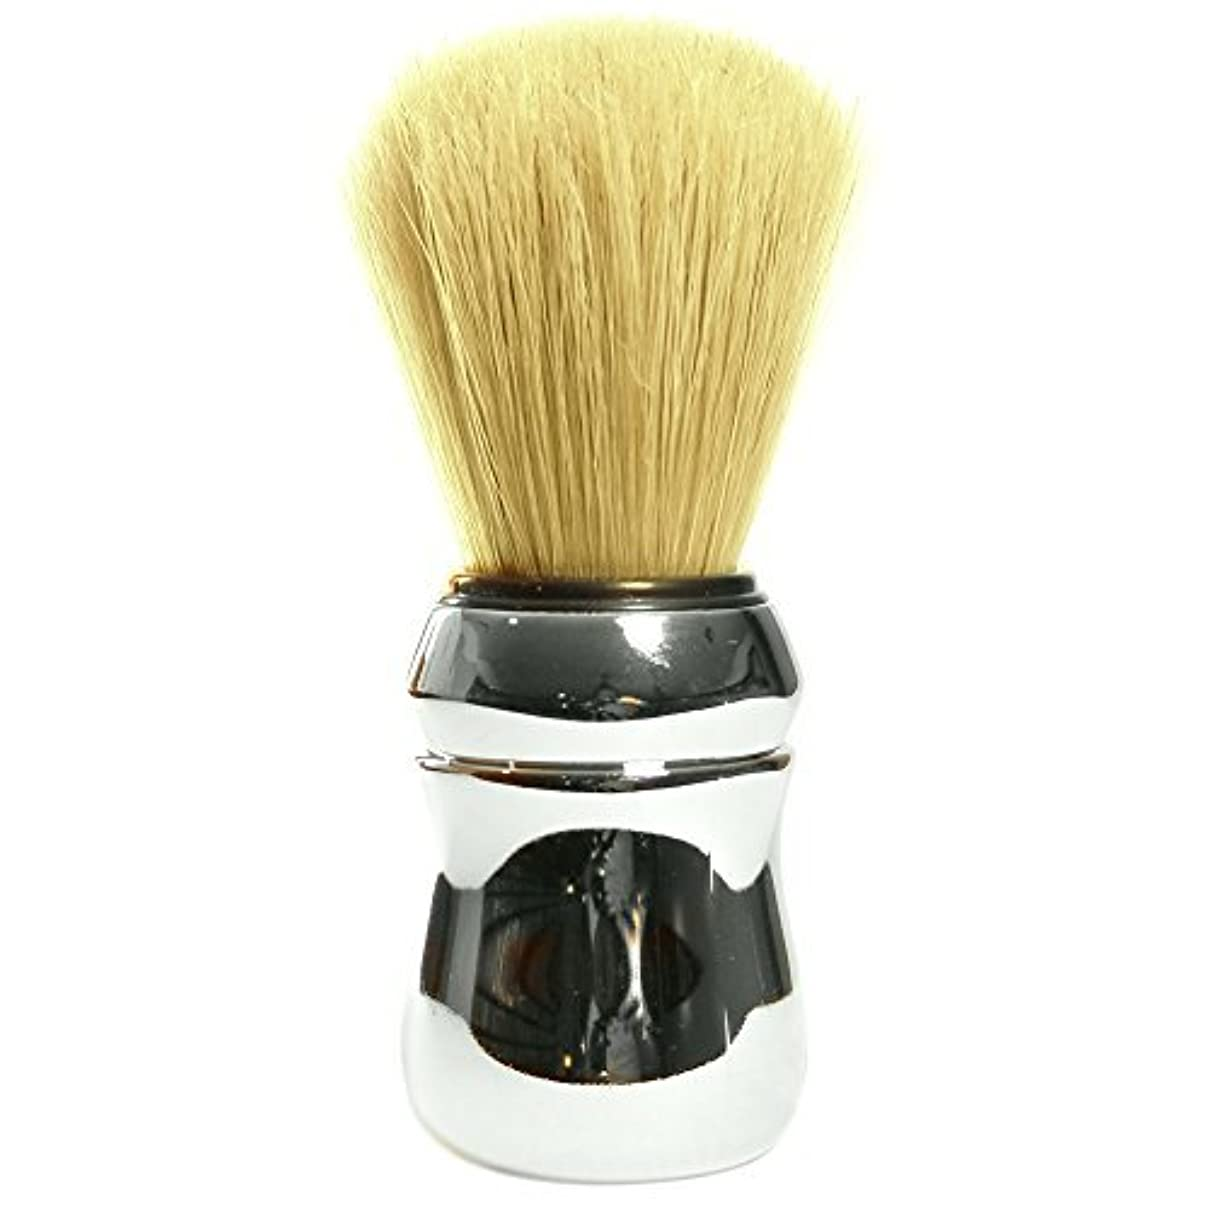 みぞれインタビュー前提条件Proraso Professional Boar Hair Shaving Brush by Proraso